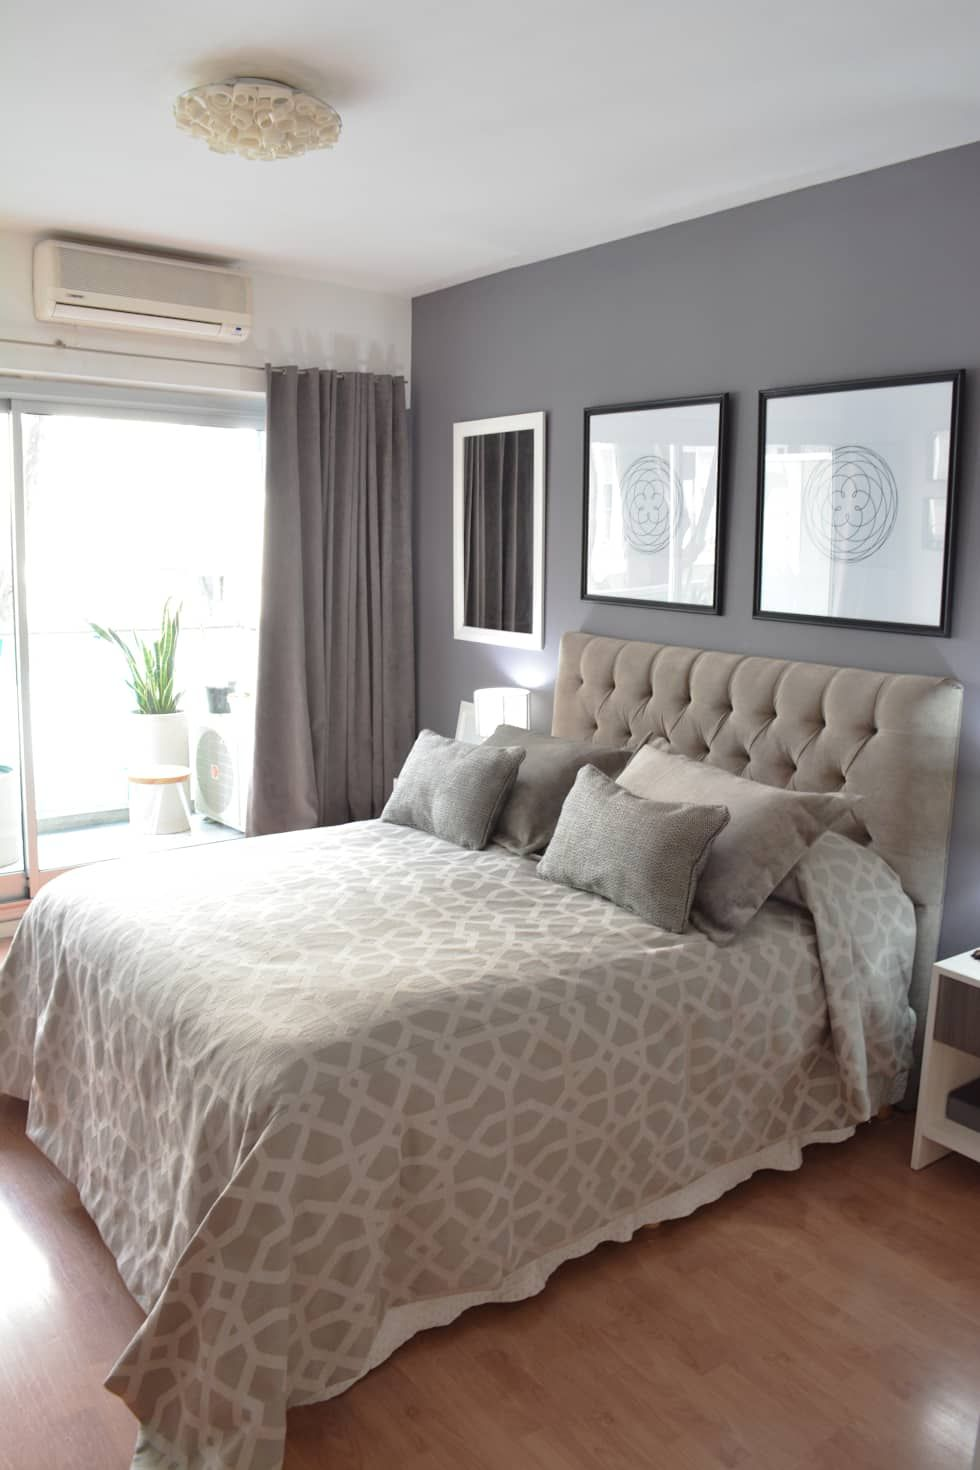 Im genes de decoraci n y dise o de interiores bedrooms for Dormitorios modernos